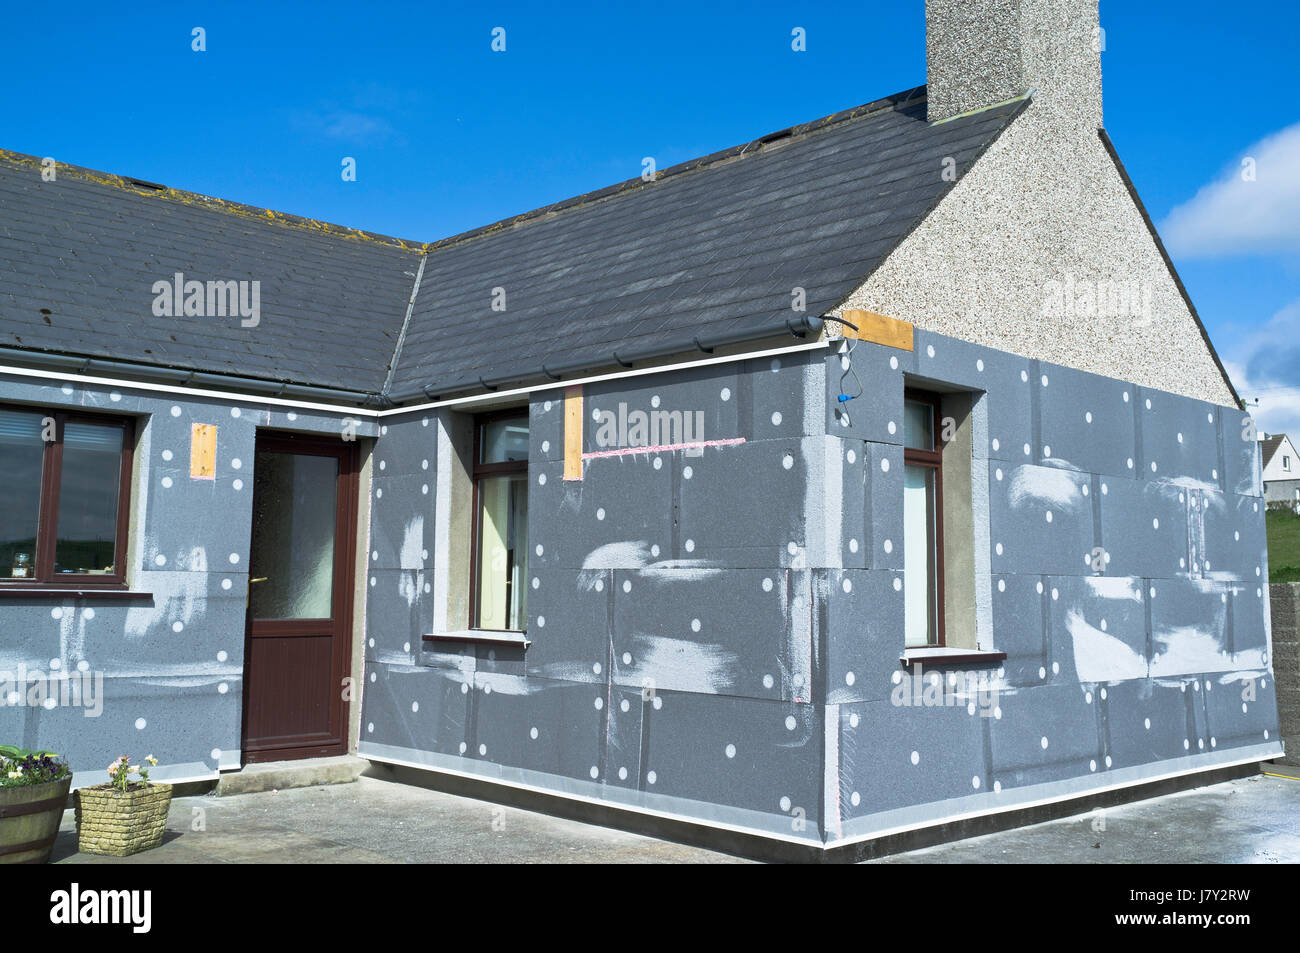 Exterior Building Insulation : Wall insulation heating building house uk